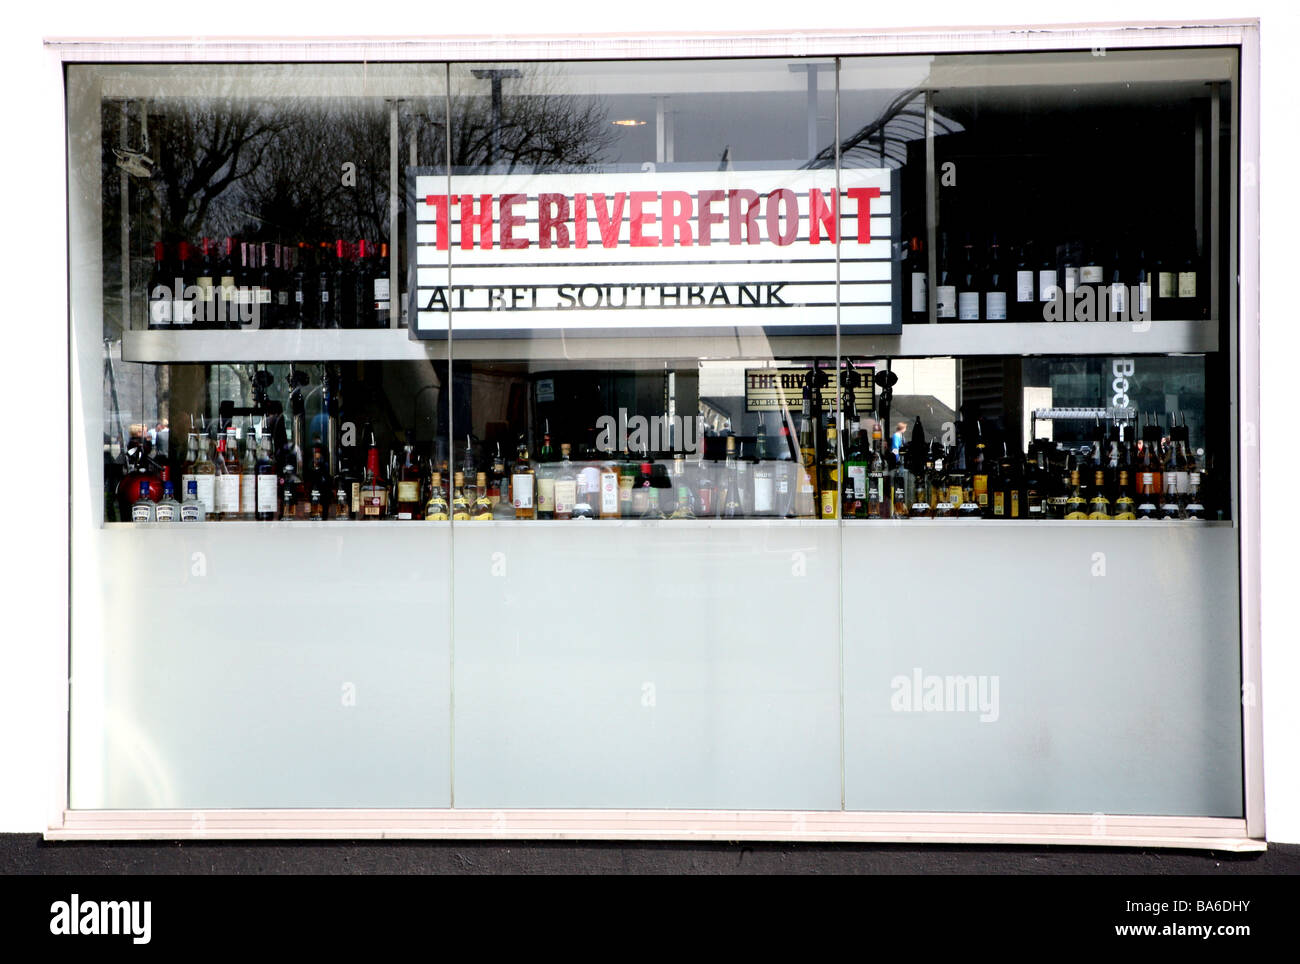 British Film Institute bar, South Bank, London - Stock Image